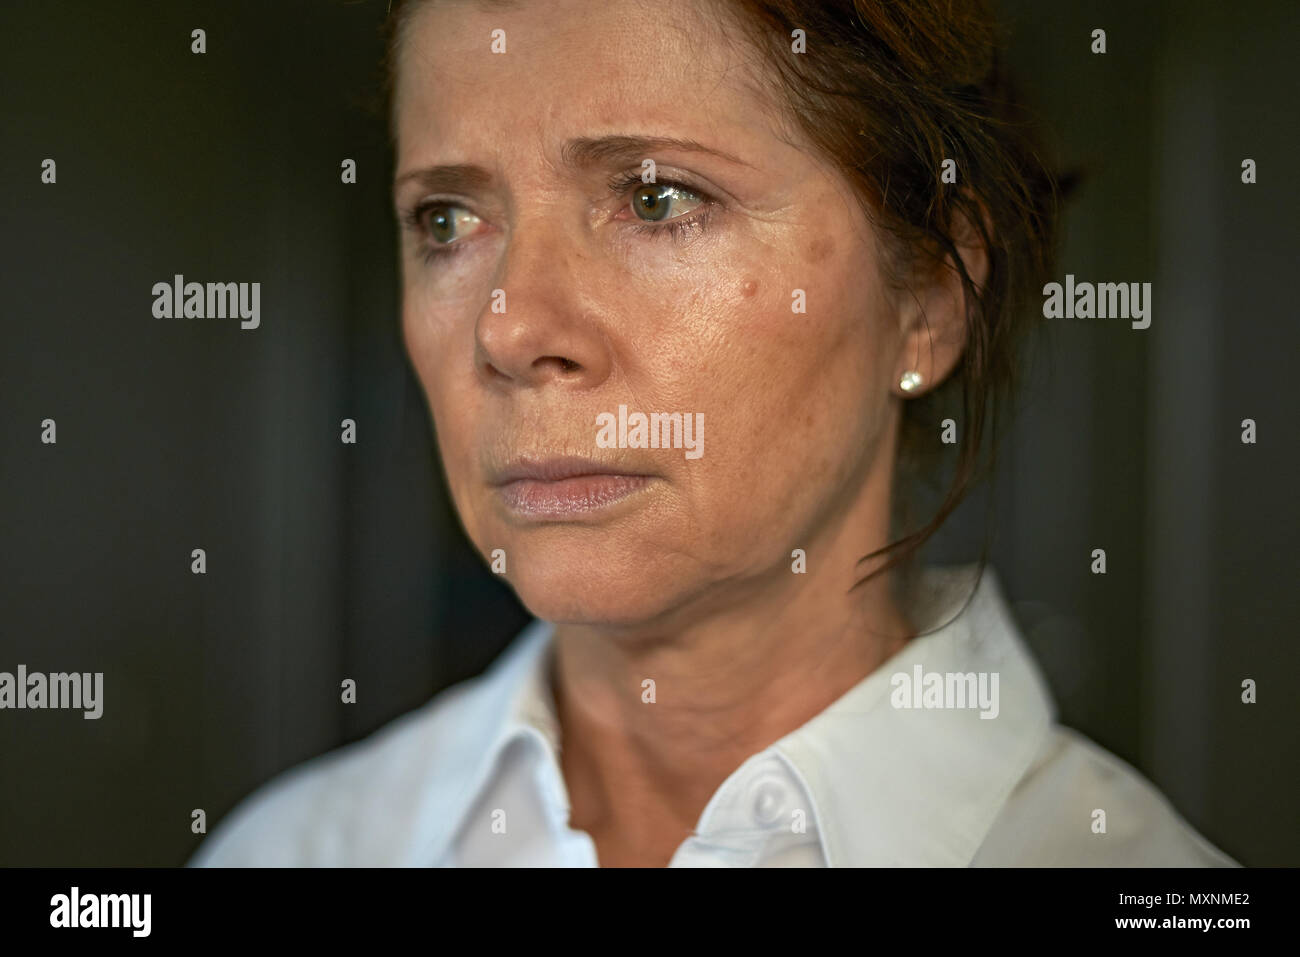 Portrait of an elderly caucasian woman looking very lost and upset with teary eyes about to cry - Stock Image